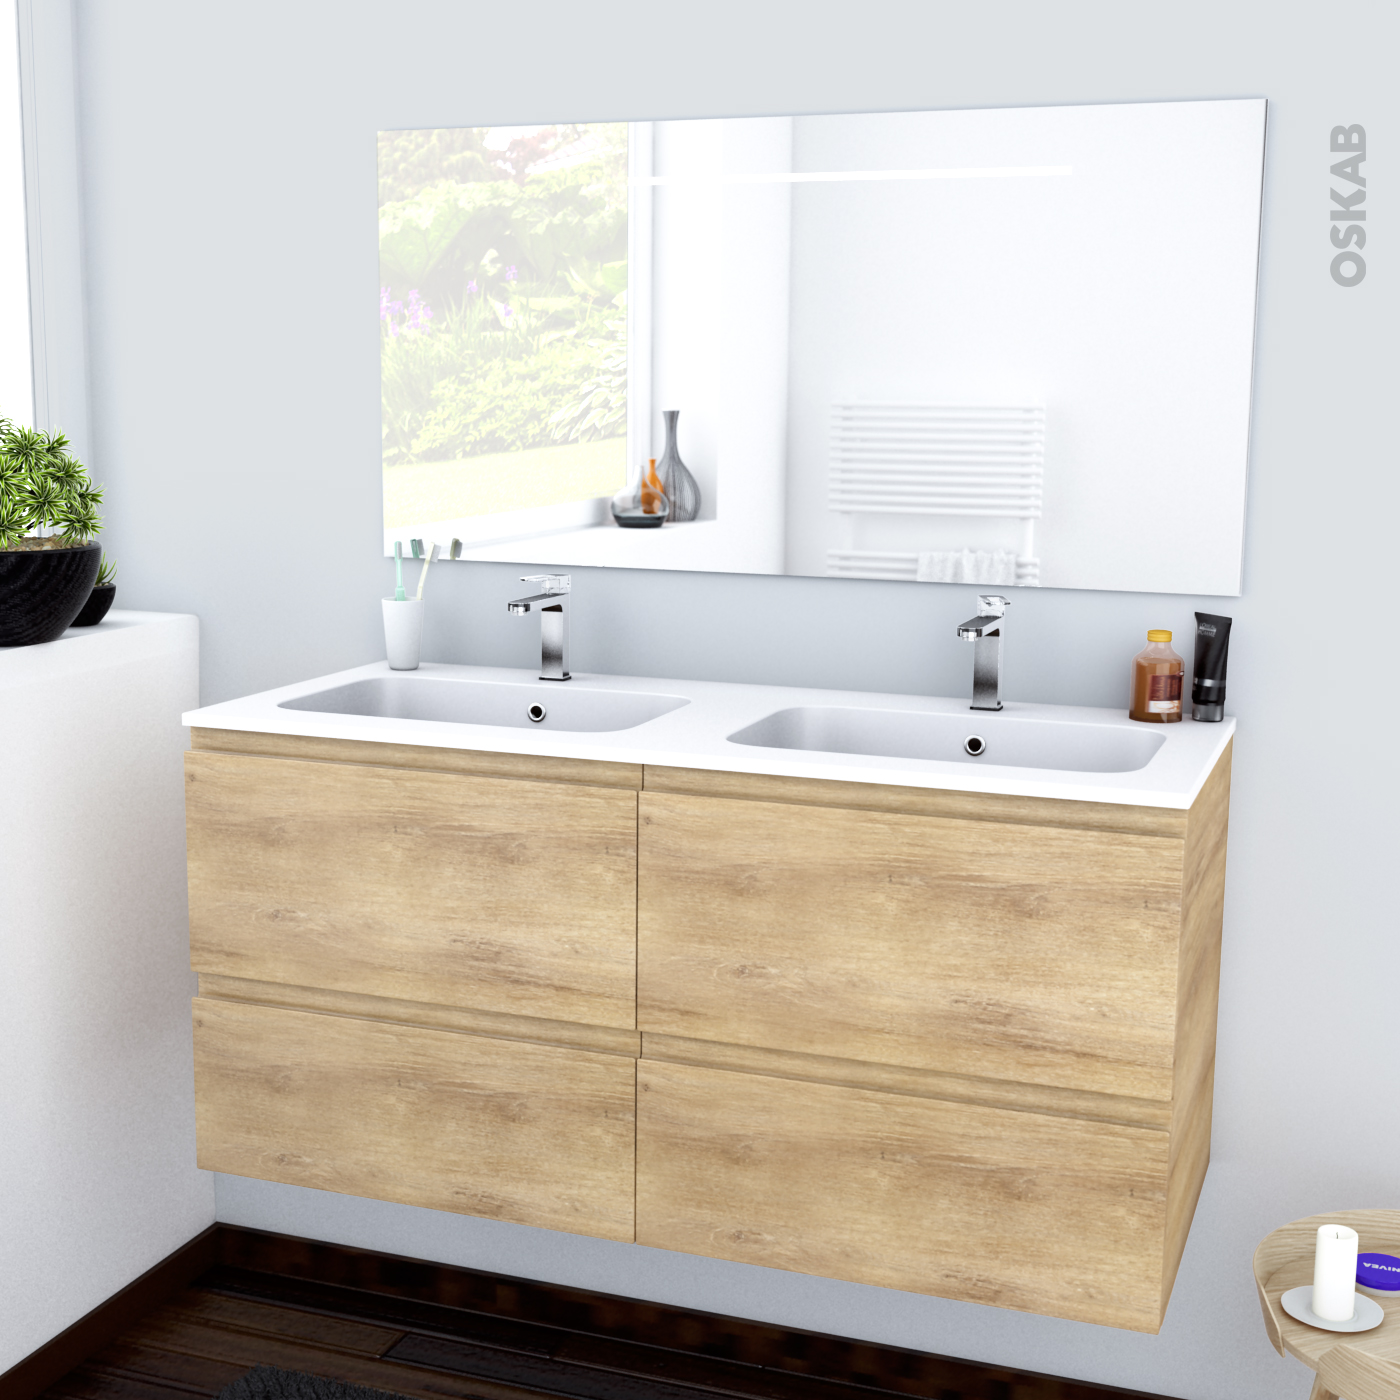 Lavabo double vasque retro hudson reed ensemble meuble de for Ensemble meuble vasque salle de bain